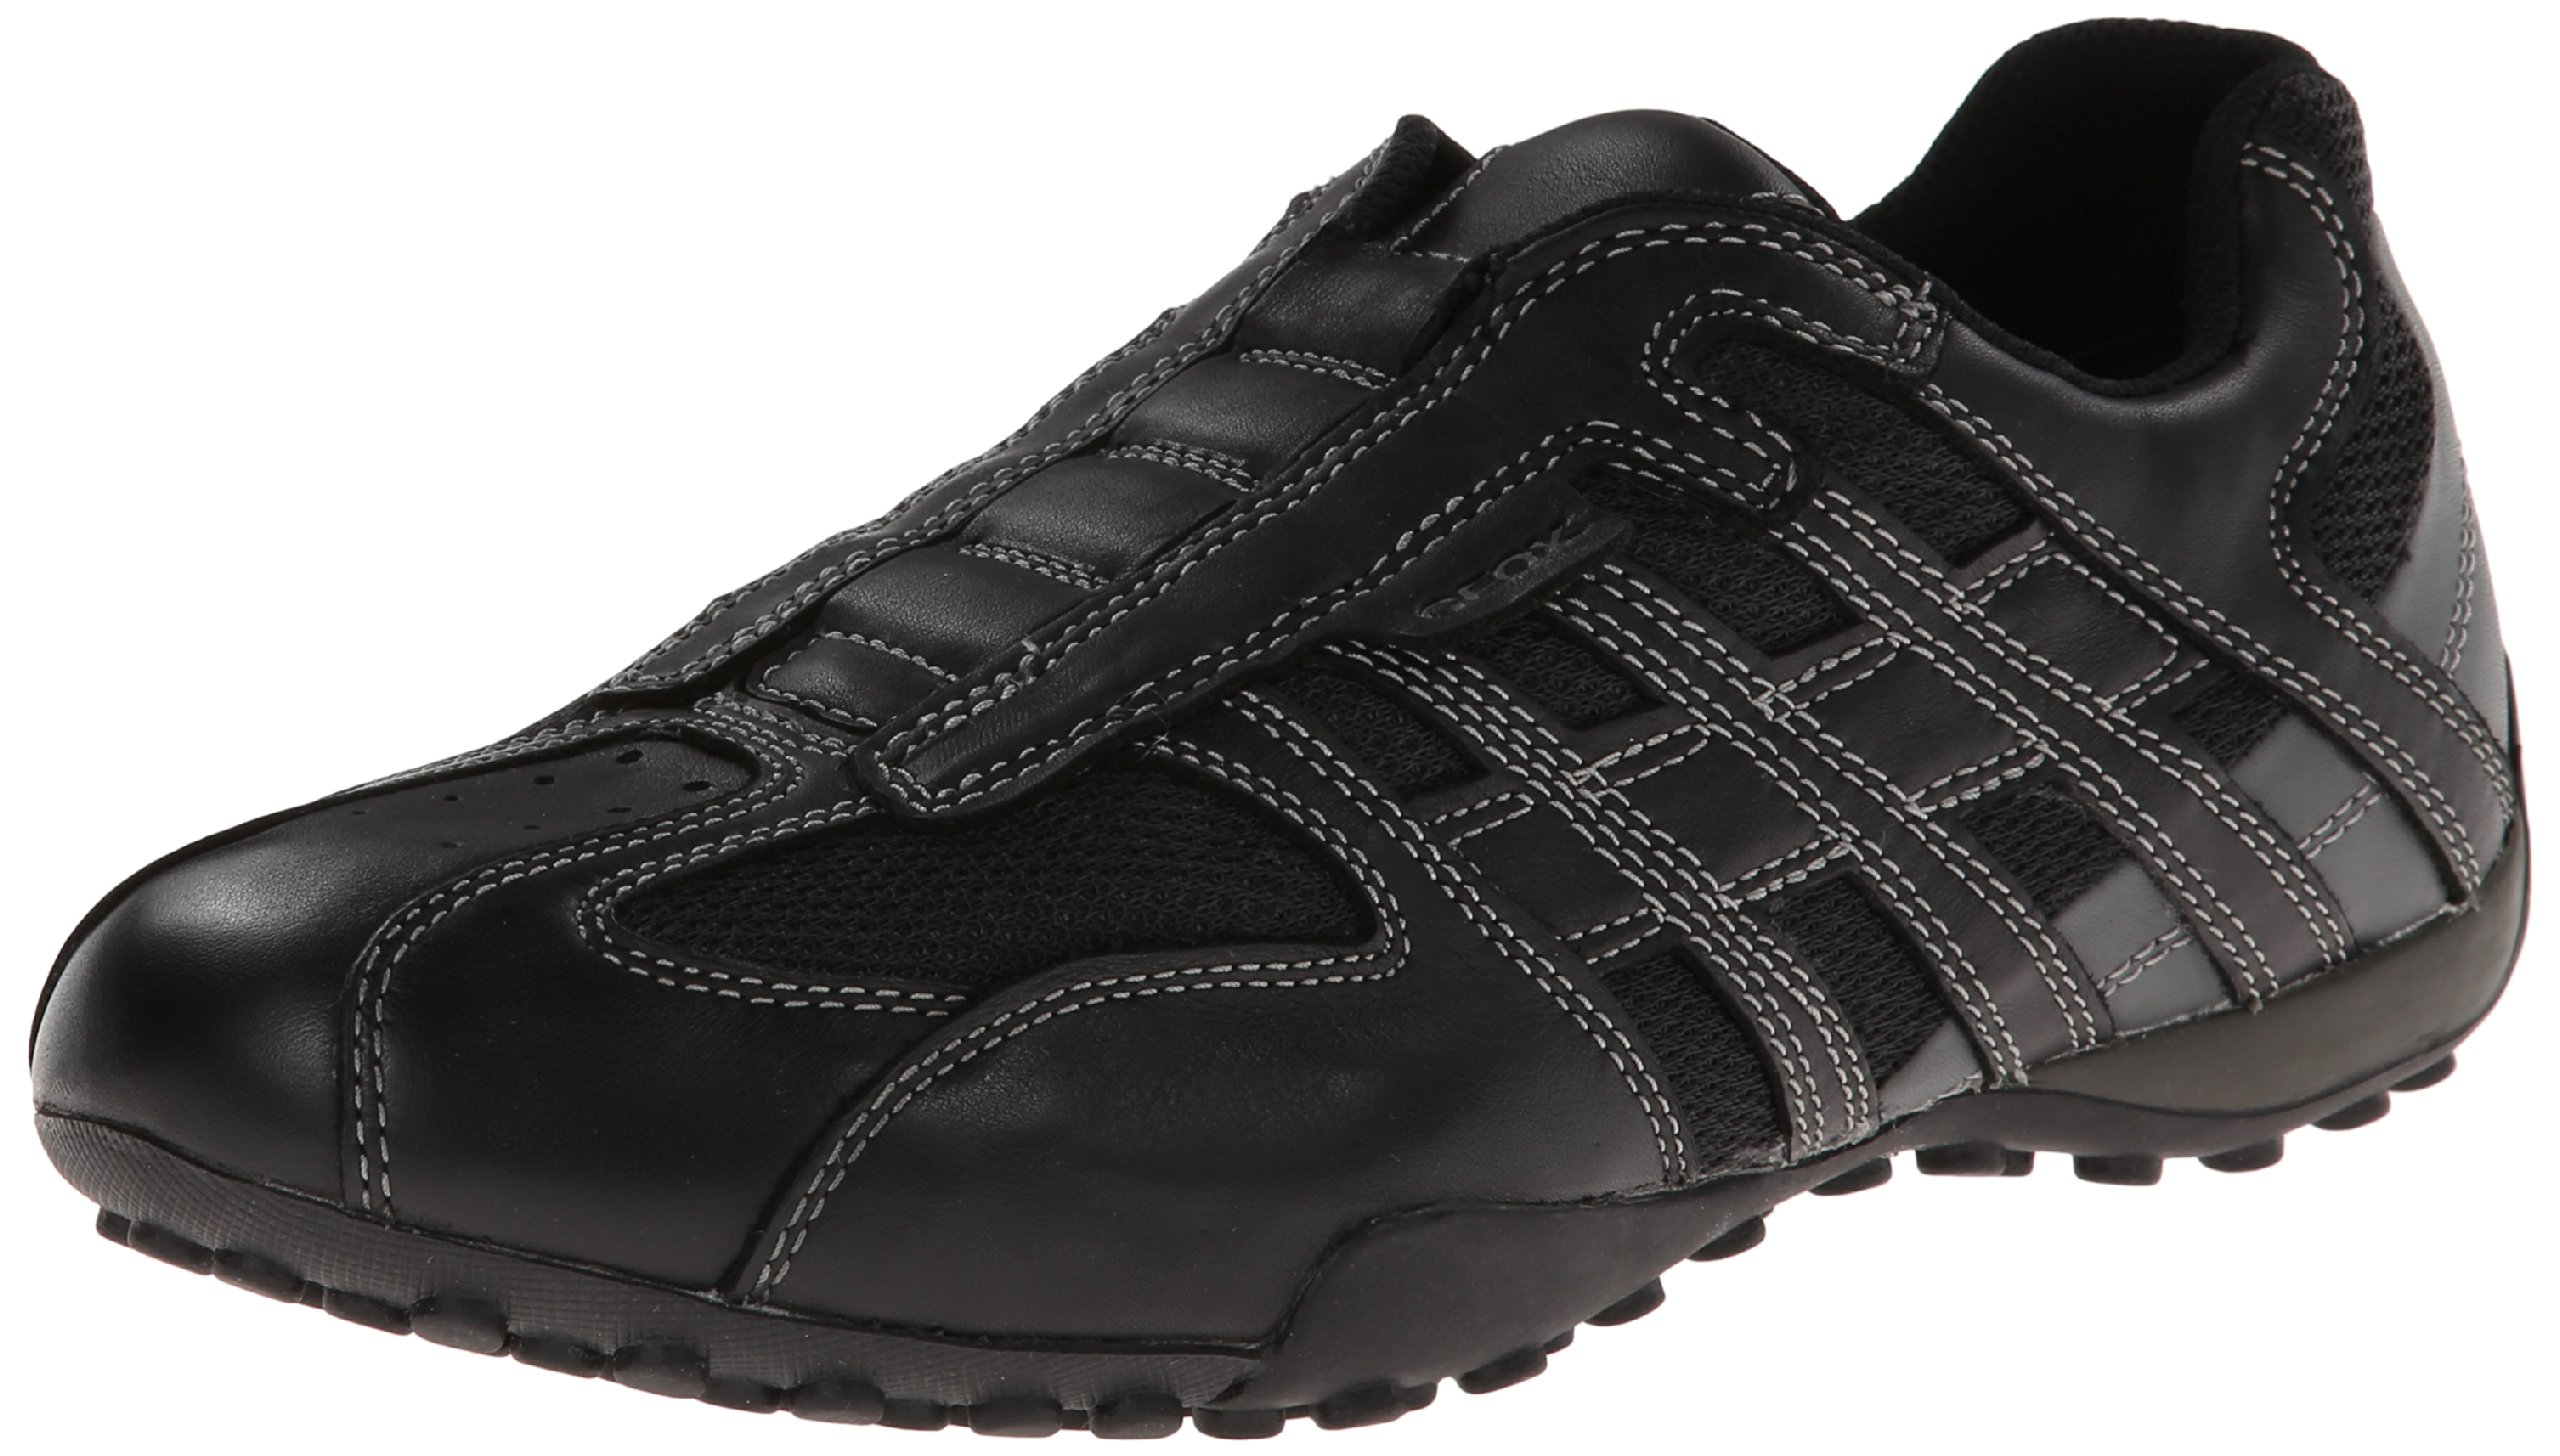 Moderne Geox Baskets Sneakers, Homme Geox Snake Baskets Mode